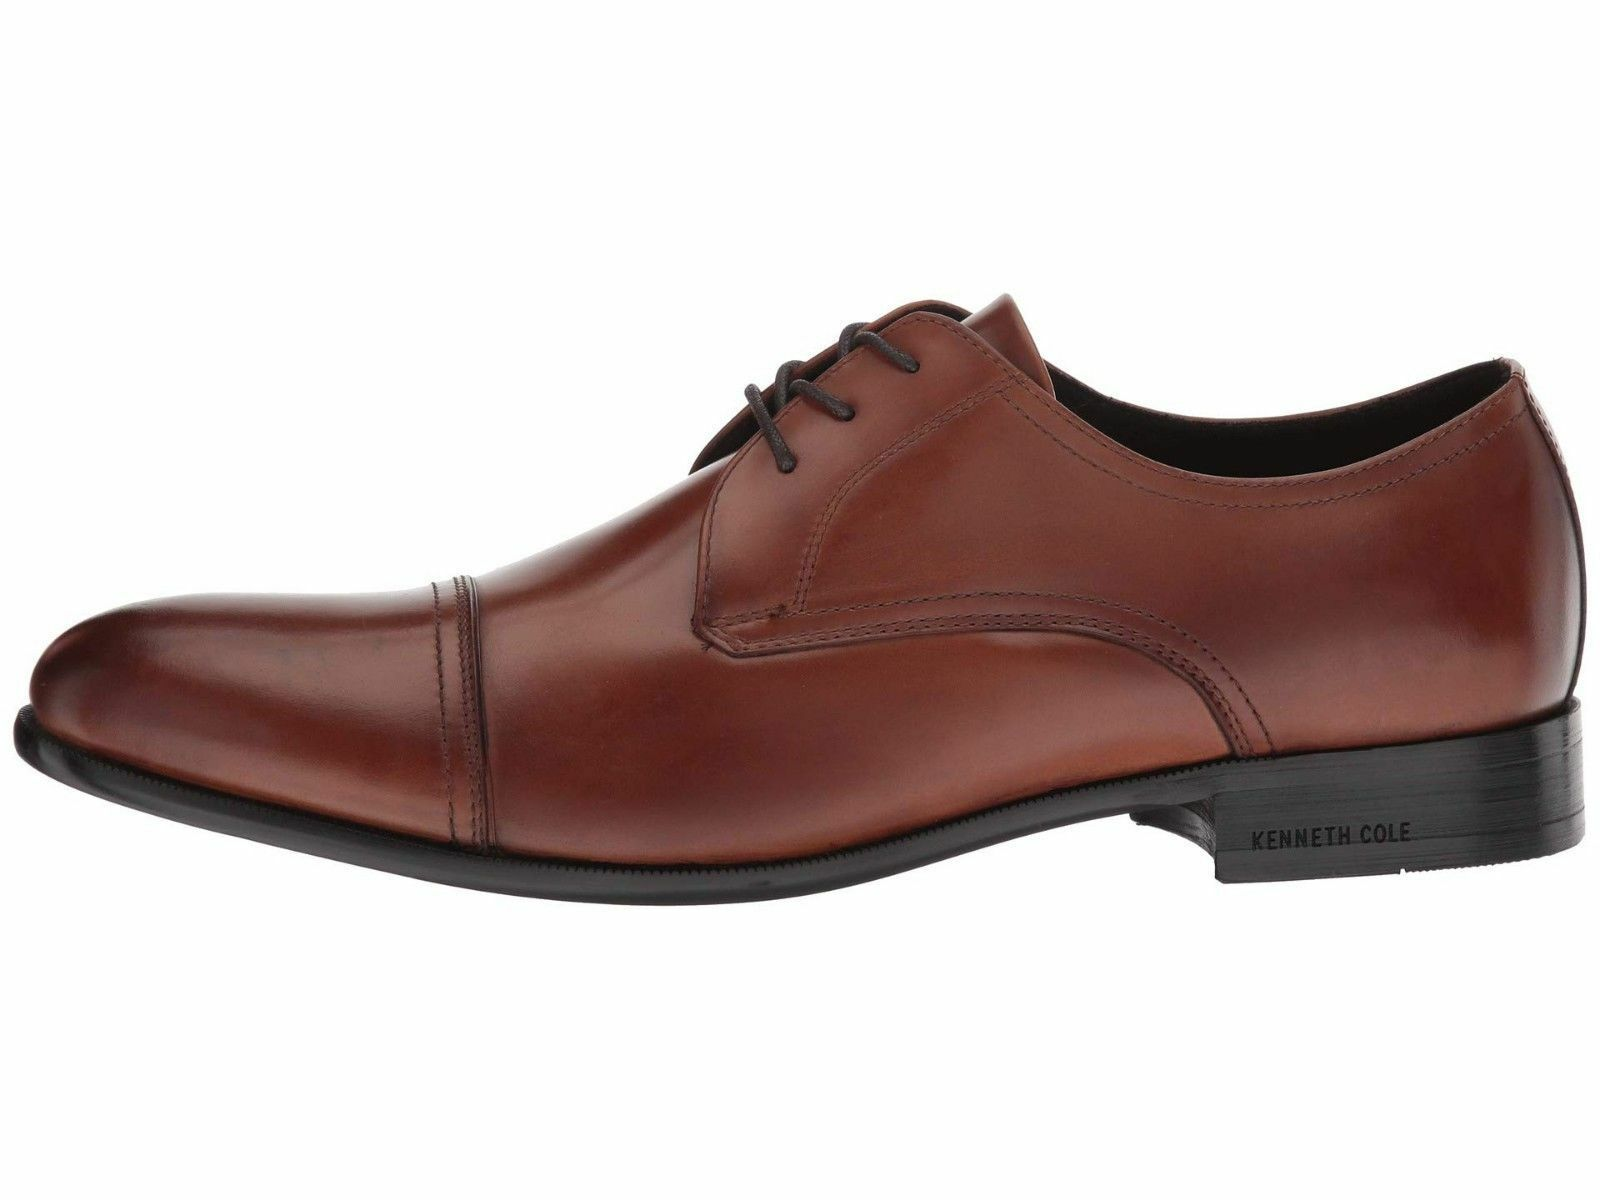 Kenneth Cole Capital Lace-Up Brandy Men's Oxfords KMF8132LE